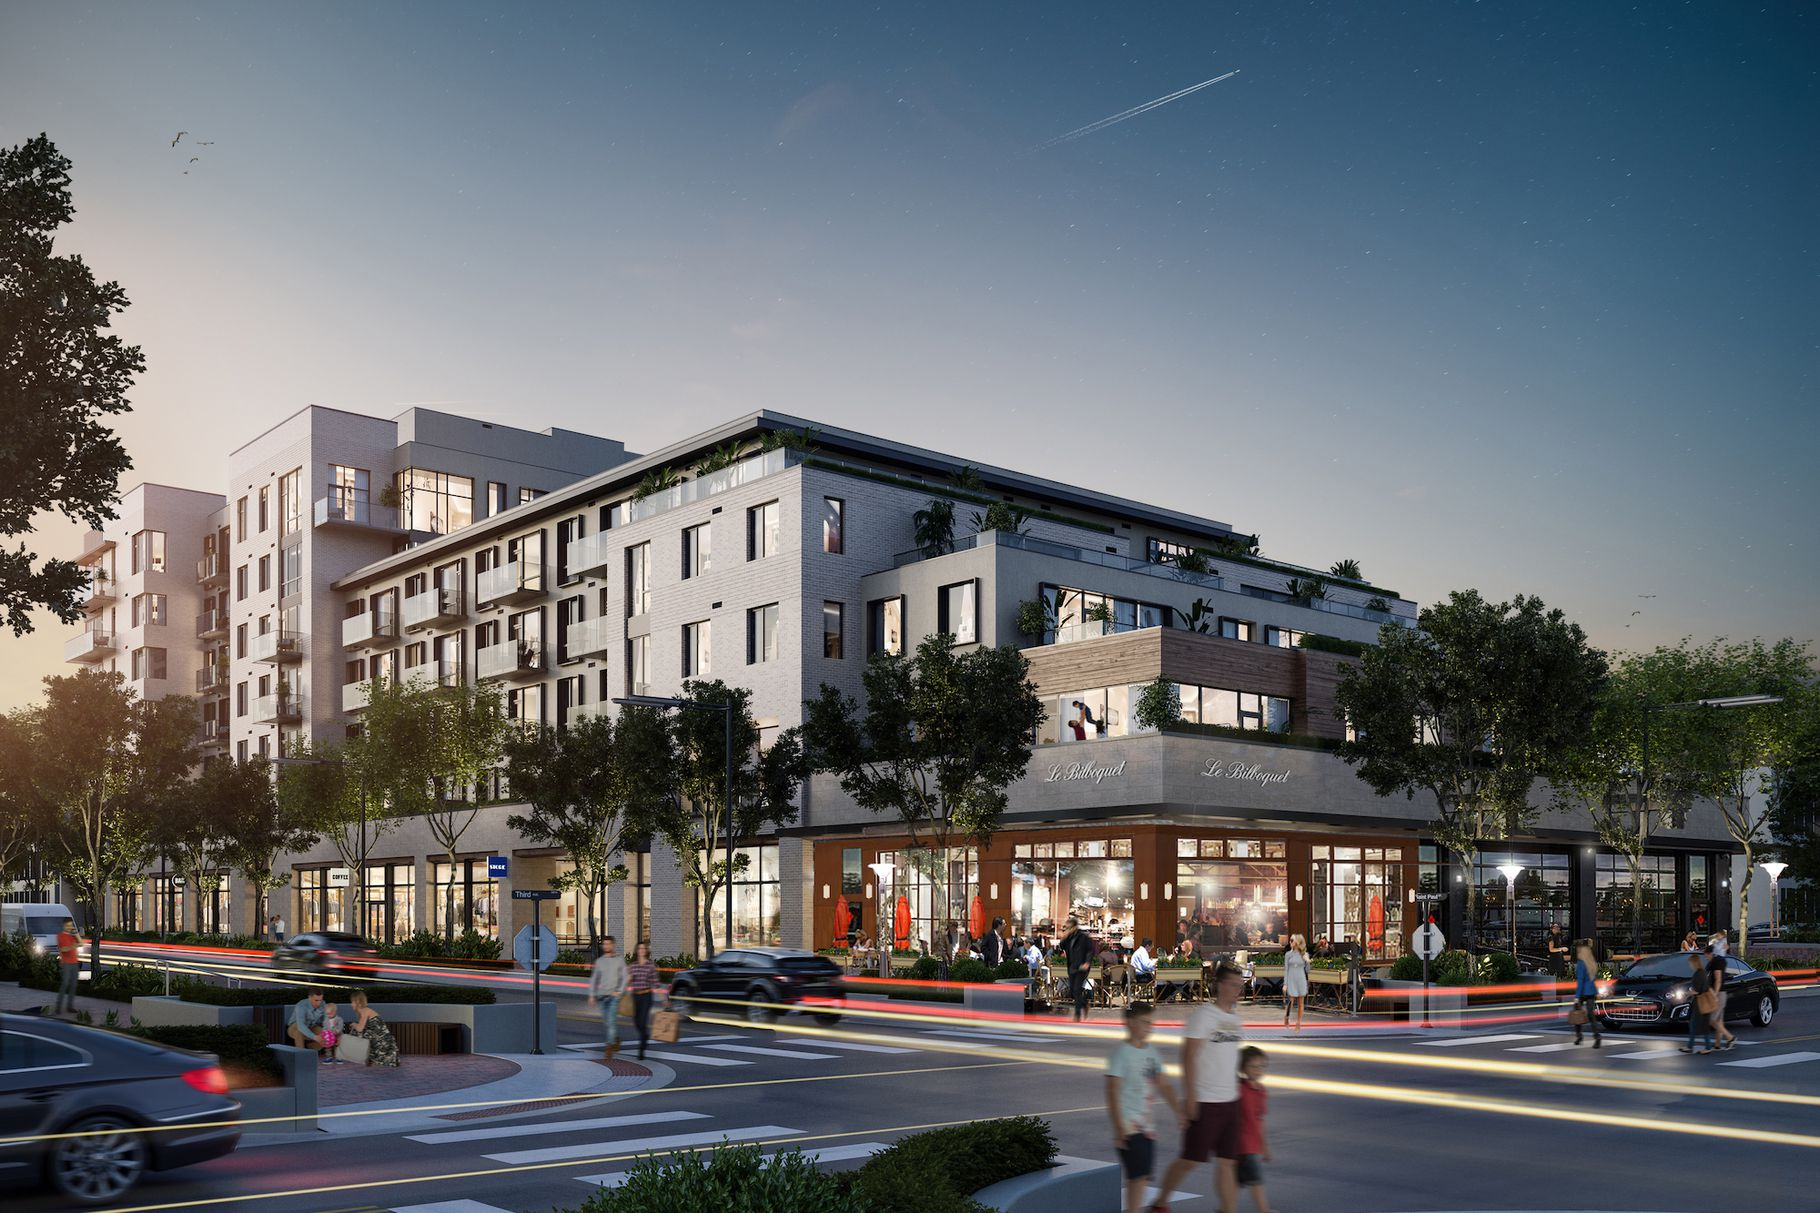 A rendering of the new St. Paul Collection residential building in Cherry Creek with the planned Le Biblioquet restaurant visible in the front of the structure